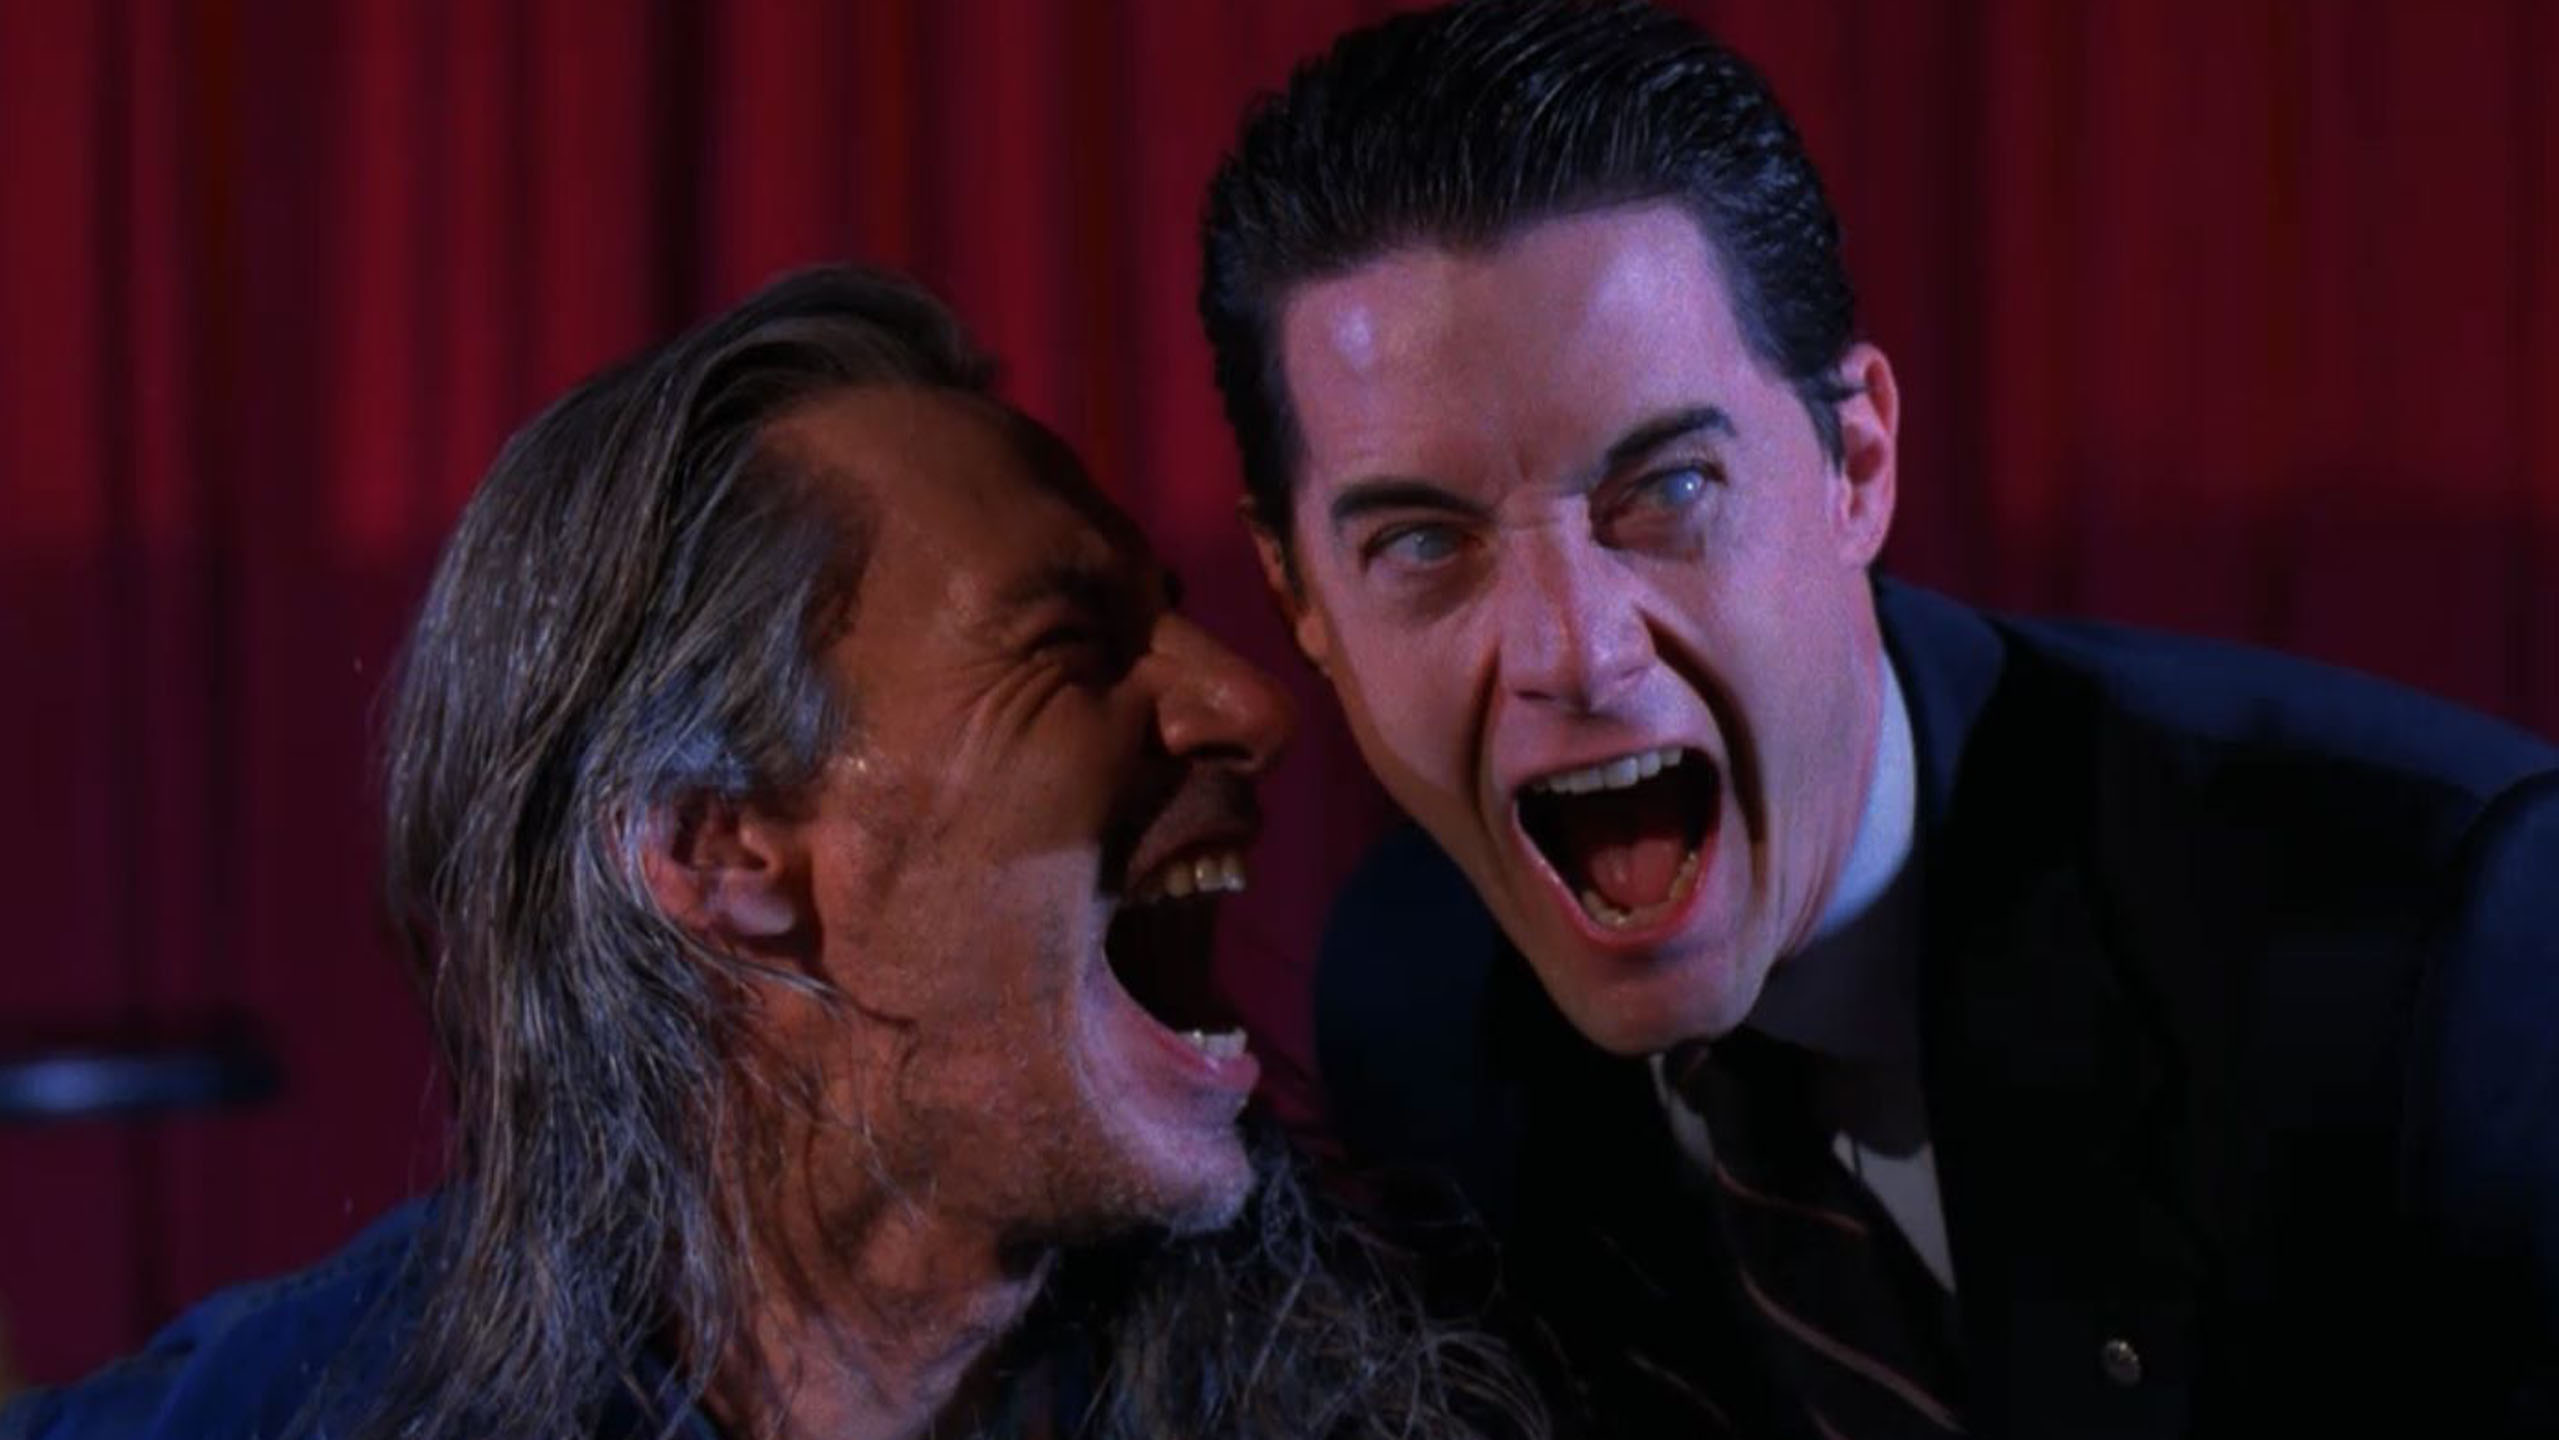 Twin Peaks – Lynch/Frost Productions – All Rights Reserved